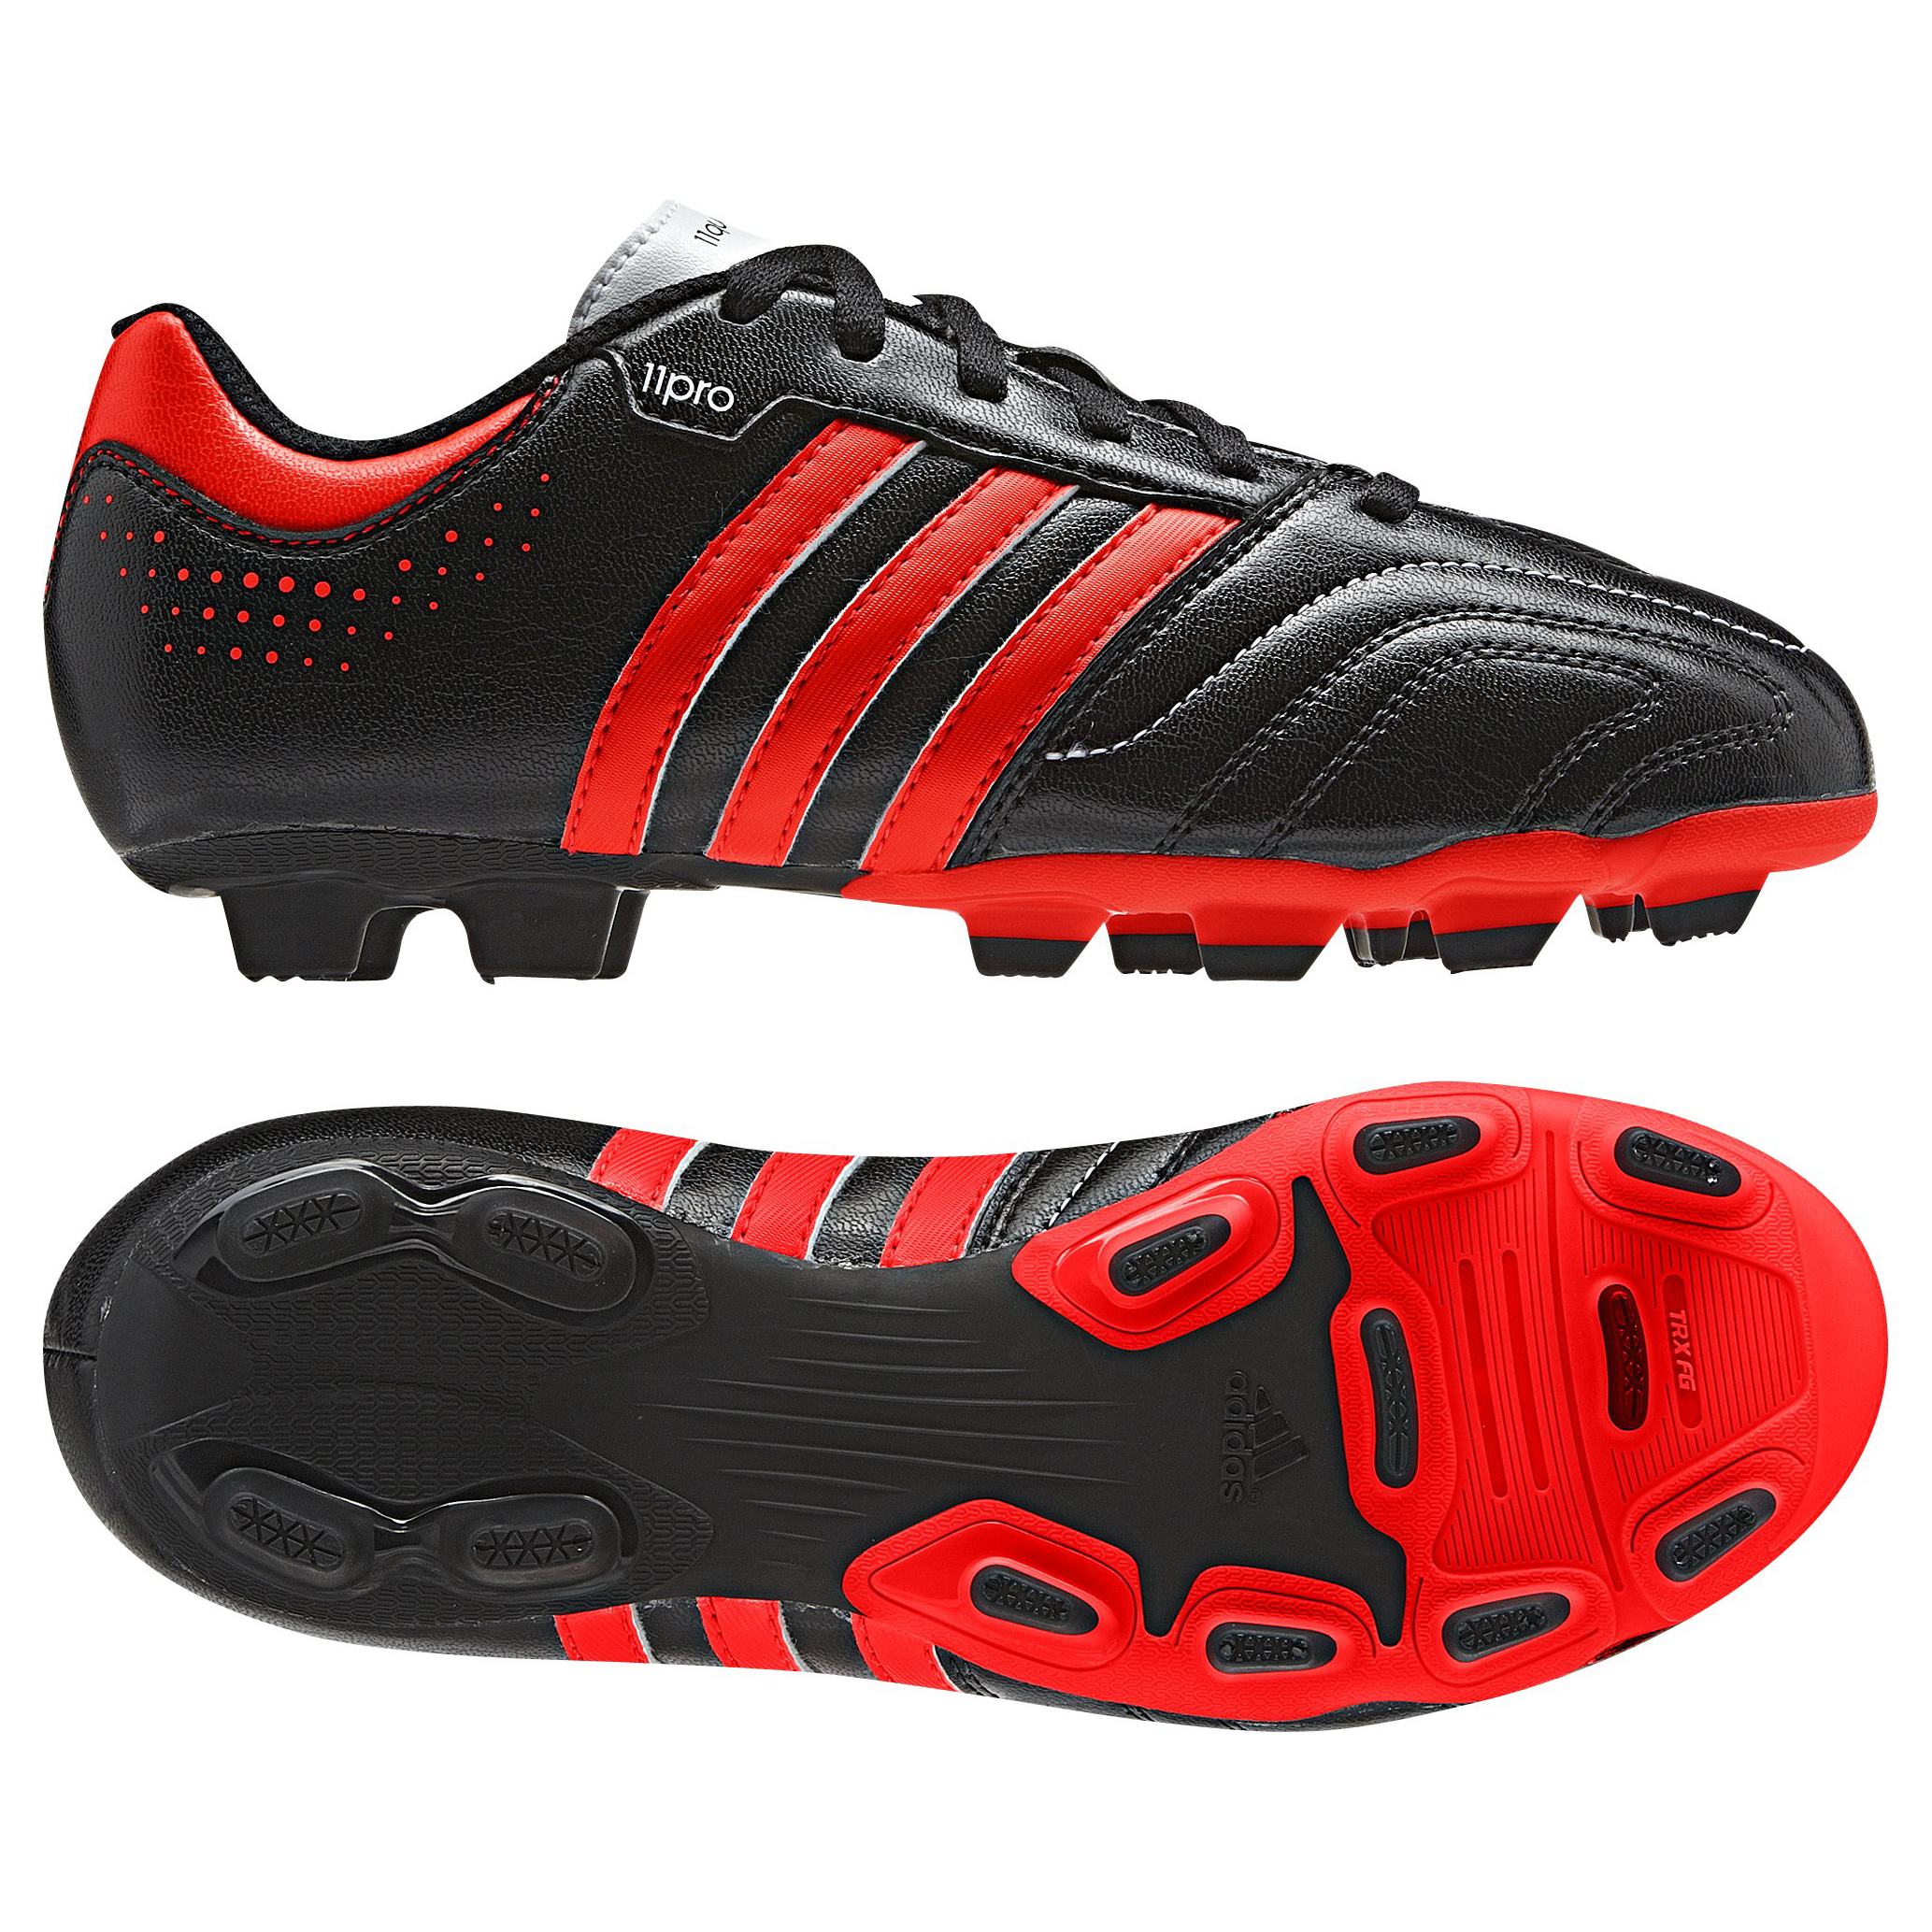 Adidas 11Questra TRX Firm Ground Football Boots - Black/Infrared/White - Kids